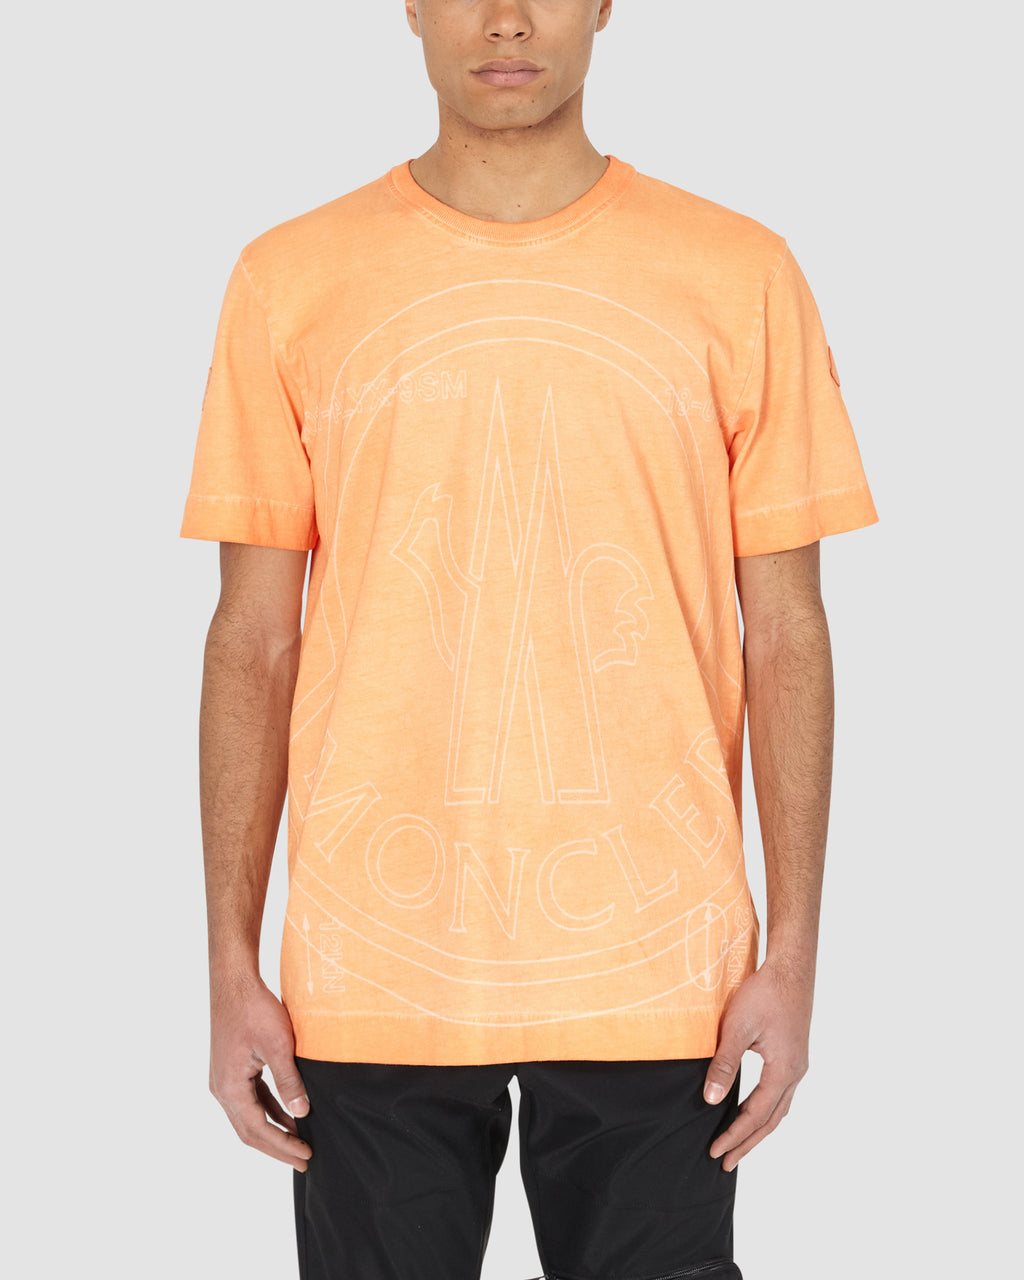 1017 ALYX 9SM | MONCLER T-SHIRT | T-Shirt | Google Shopping, Man, Moncler, ORANGE, S20, T-Shirts, UNISEX